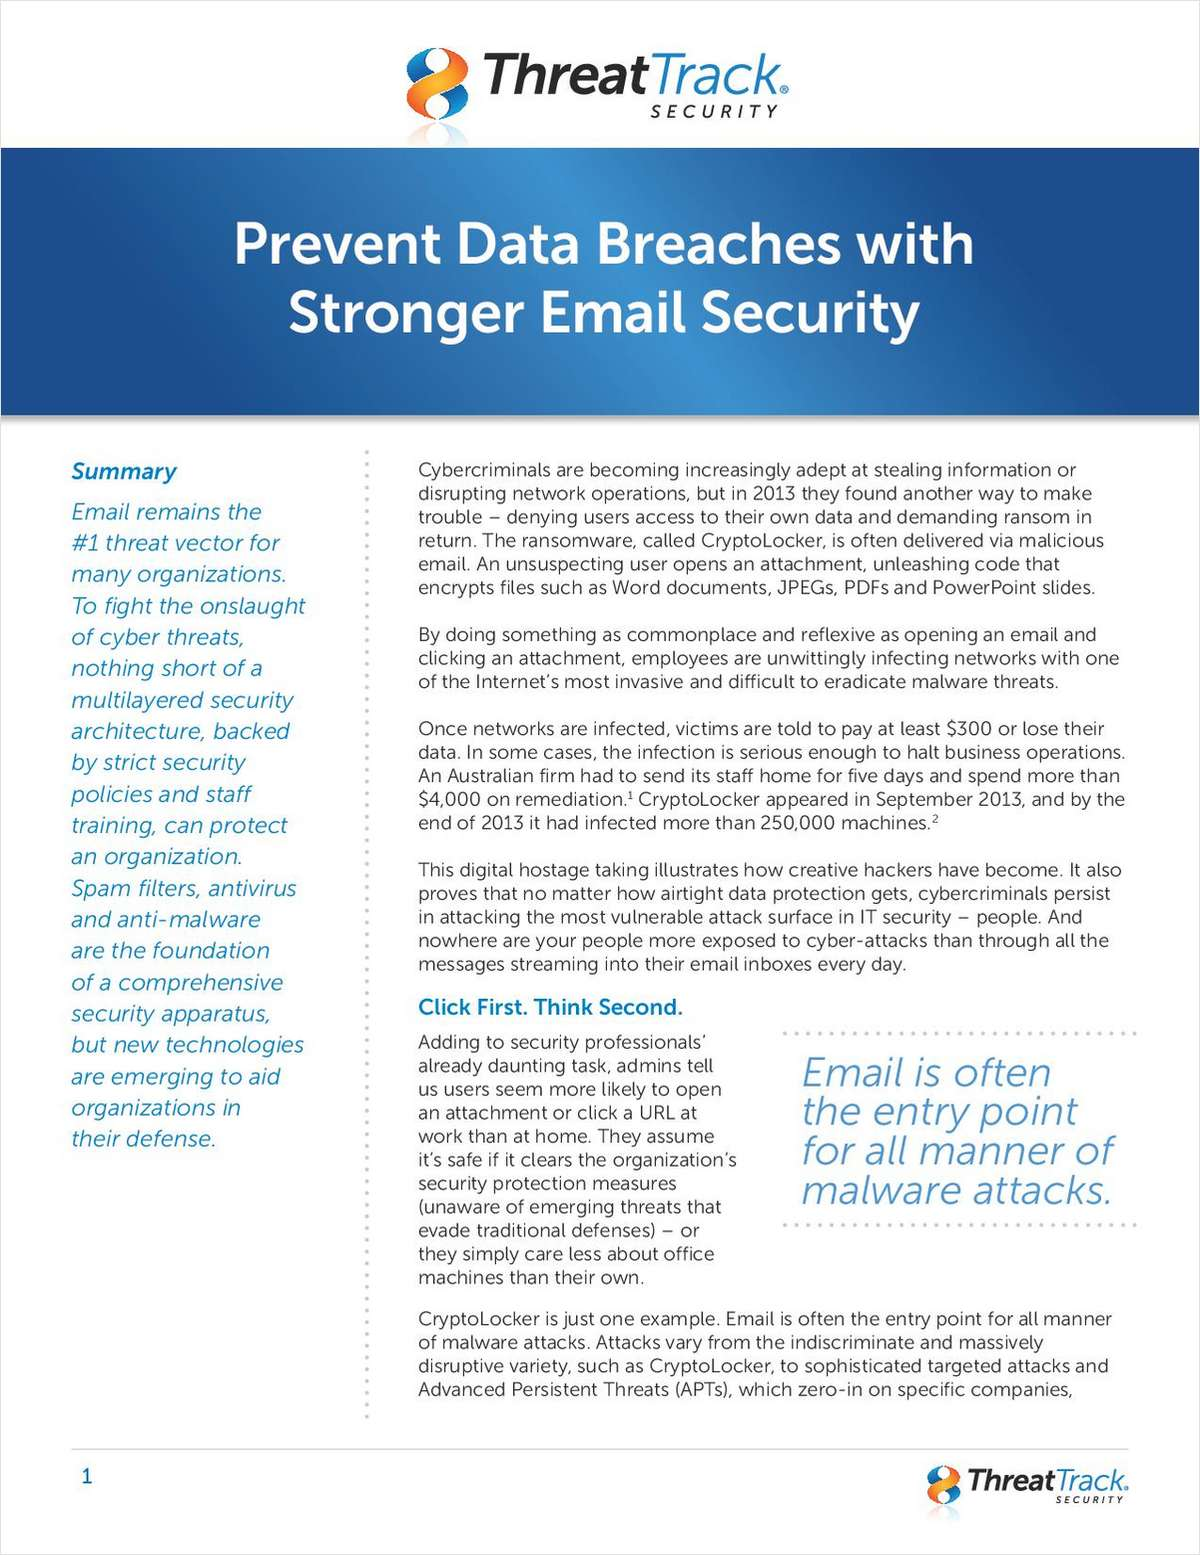 Prevent Data Breaches with Stronger Email Security